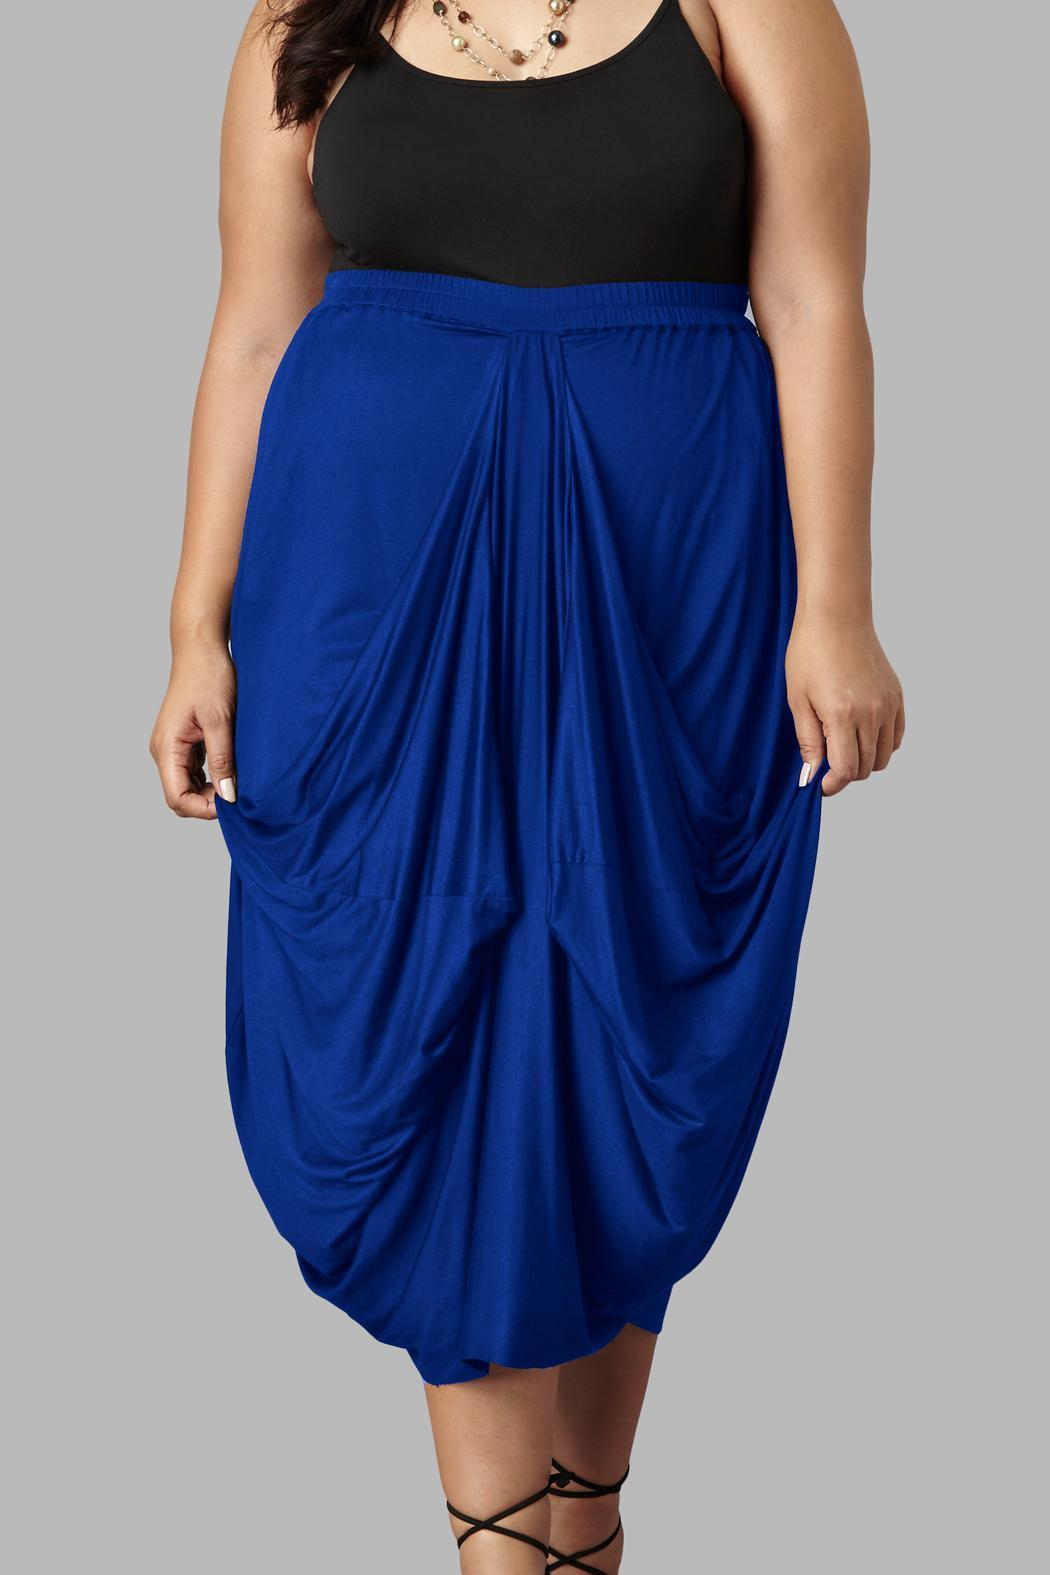 Yona New York Drape Maxi Skirt - Front Cropped Image